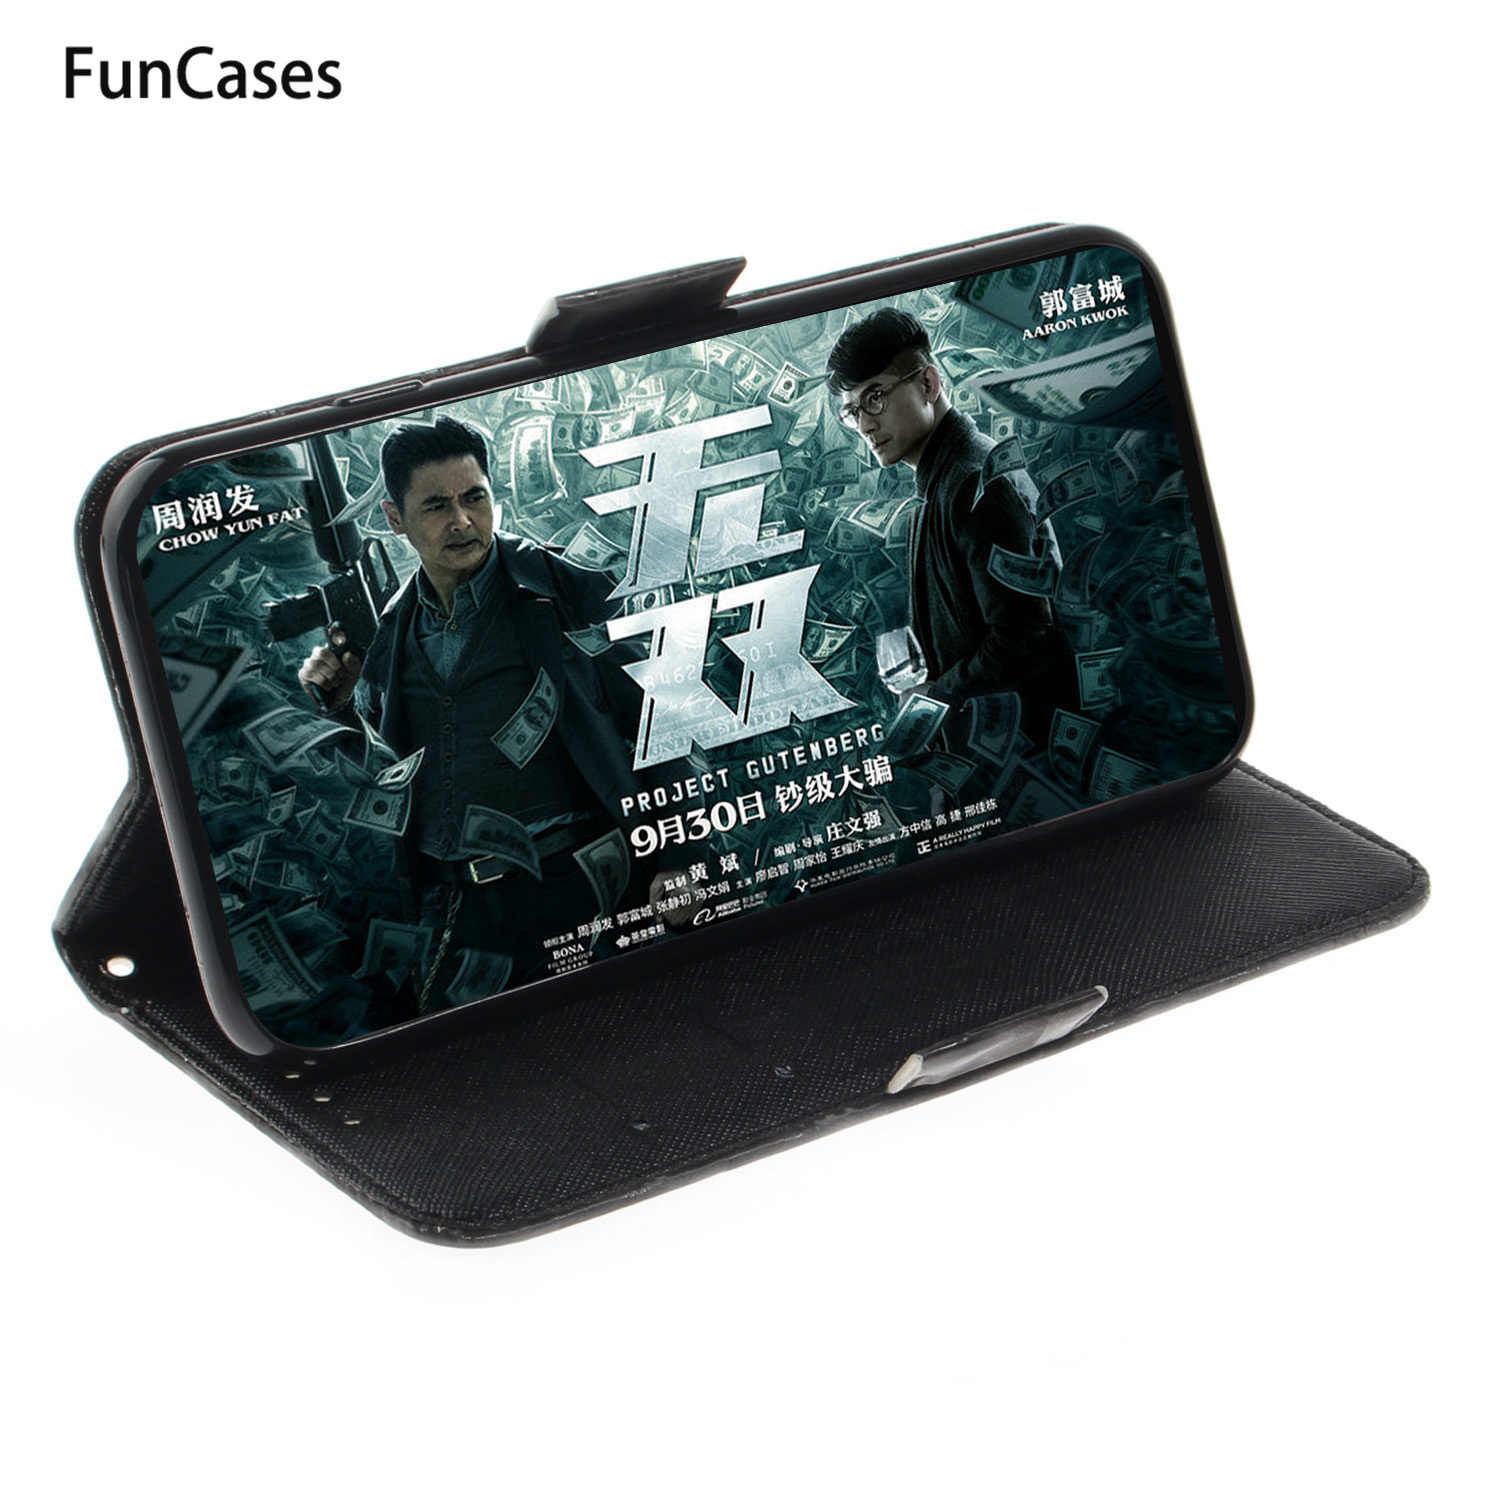 Case For Huawei Honor 10 Lite Book Case sFor Huawei P Smart 2019 7A 8C 8X 9i Maimang 6 Mate 20 Pro 20X Nova 2i 3 3E 3i 4 Plus